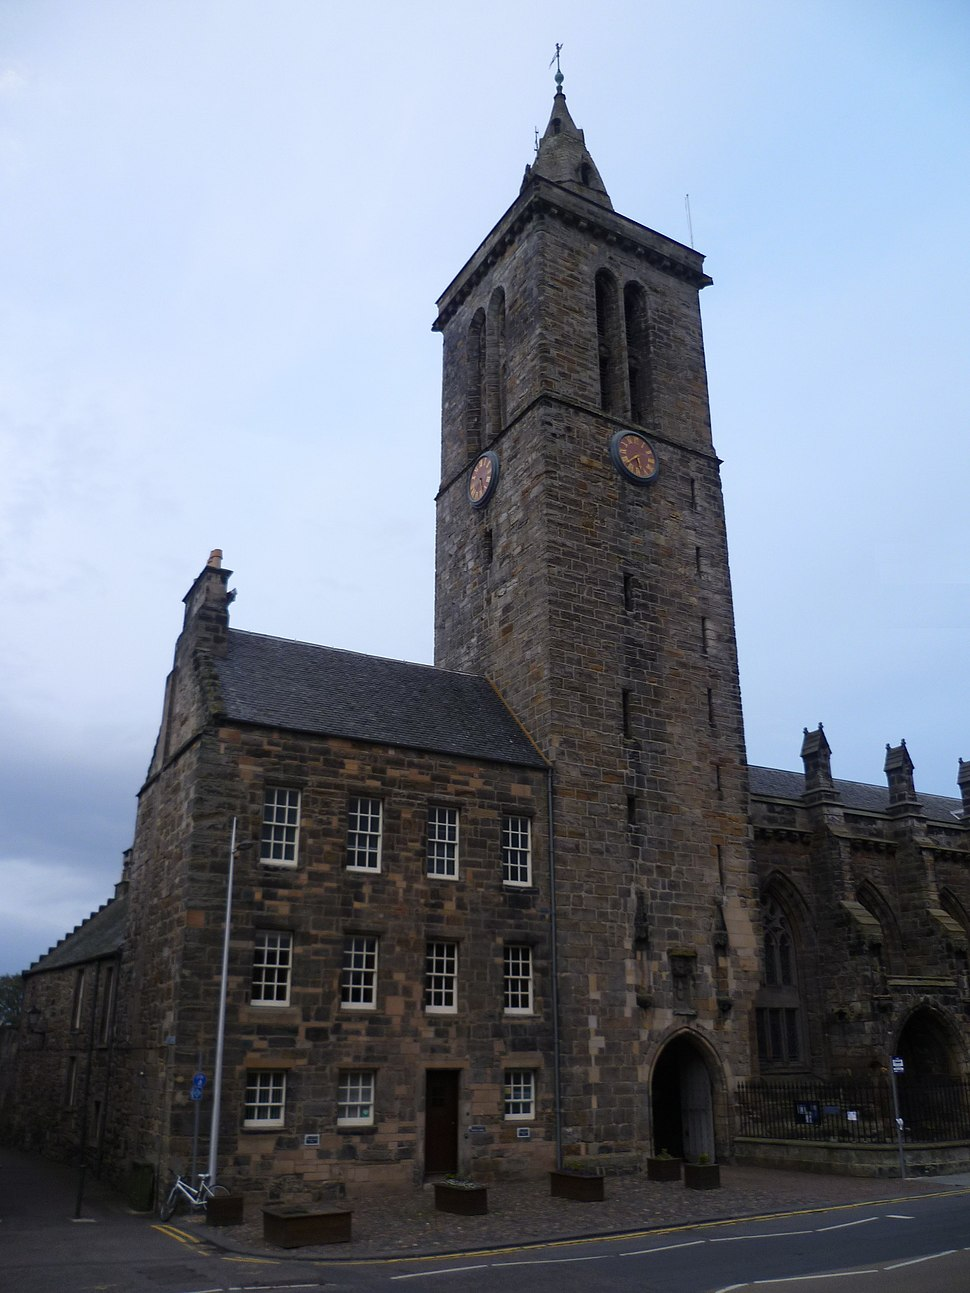 Tower of St. Salvator's College, St. Andrews Fife